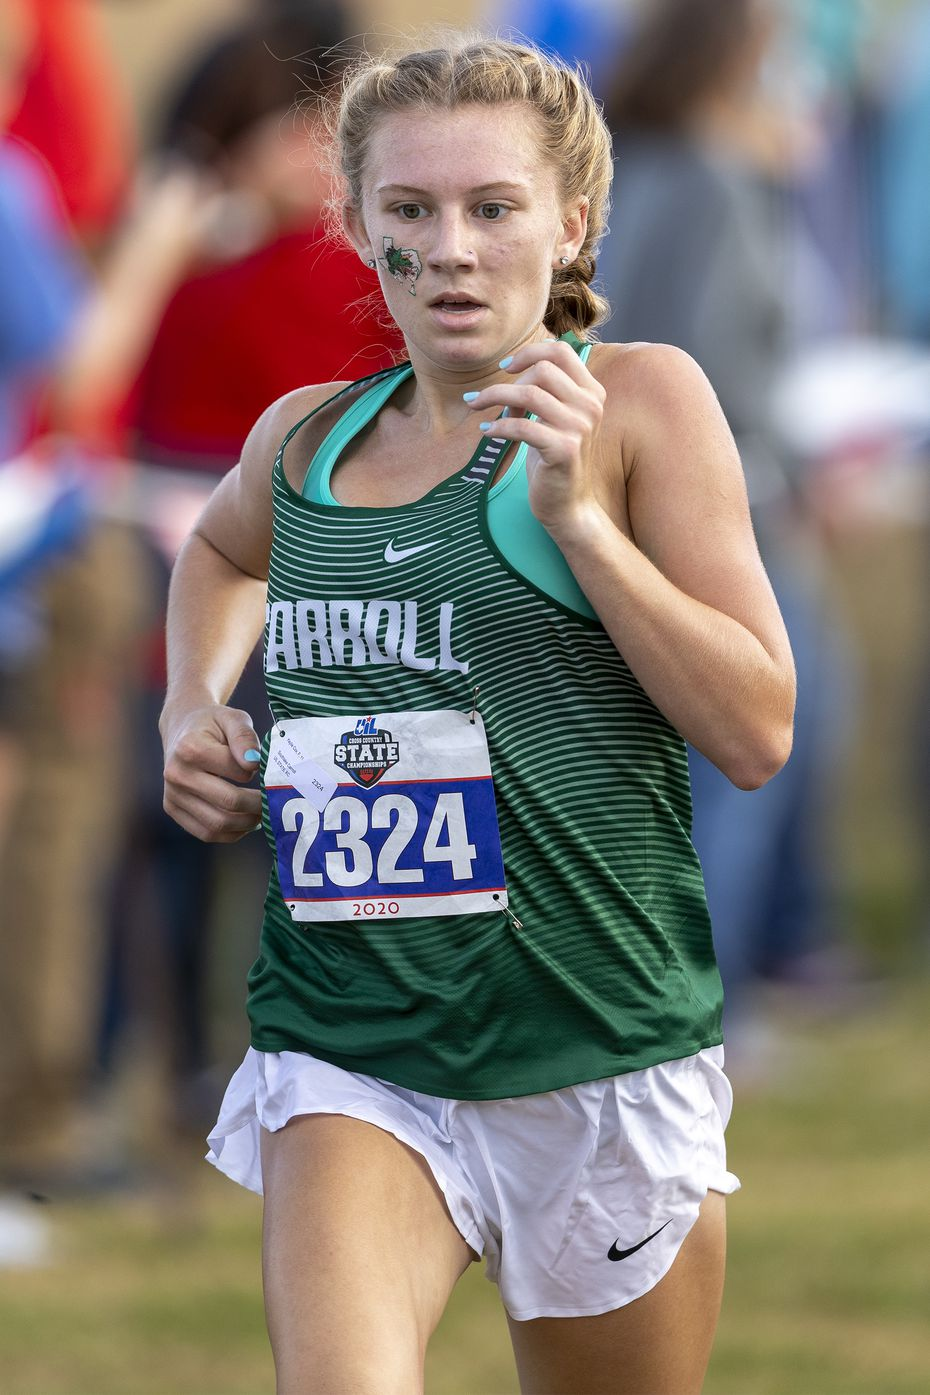 Southlake Carroll�s Kaylie Cox (2324) finishes sixth in the girls UIL Class 6A state cross country meet in Round Rock, Tuesday, Nov., 24, 2019. (Stephen Spillman/Special Contributor)